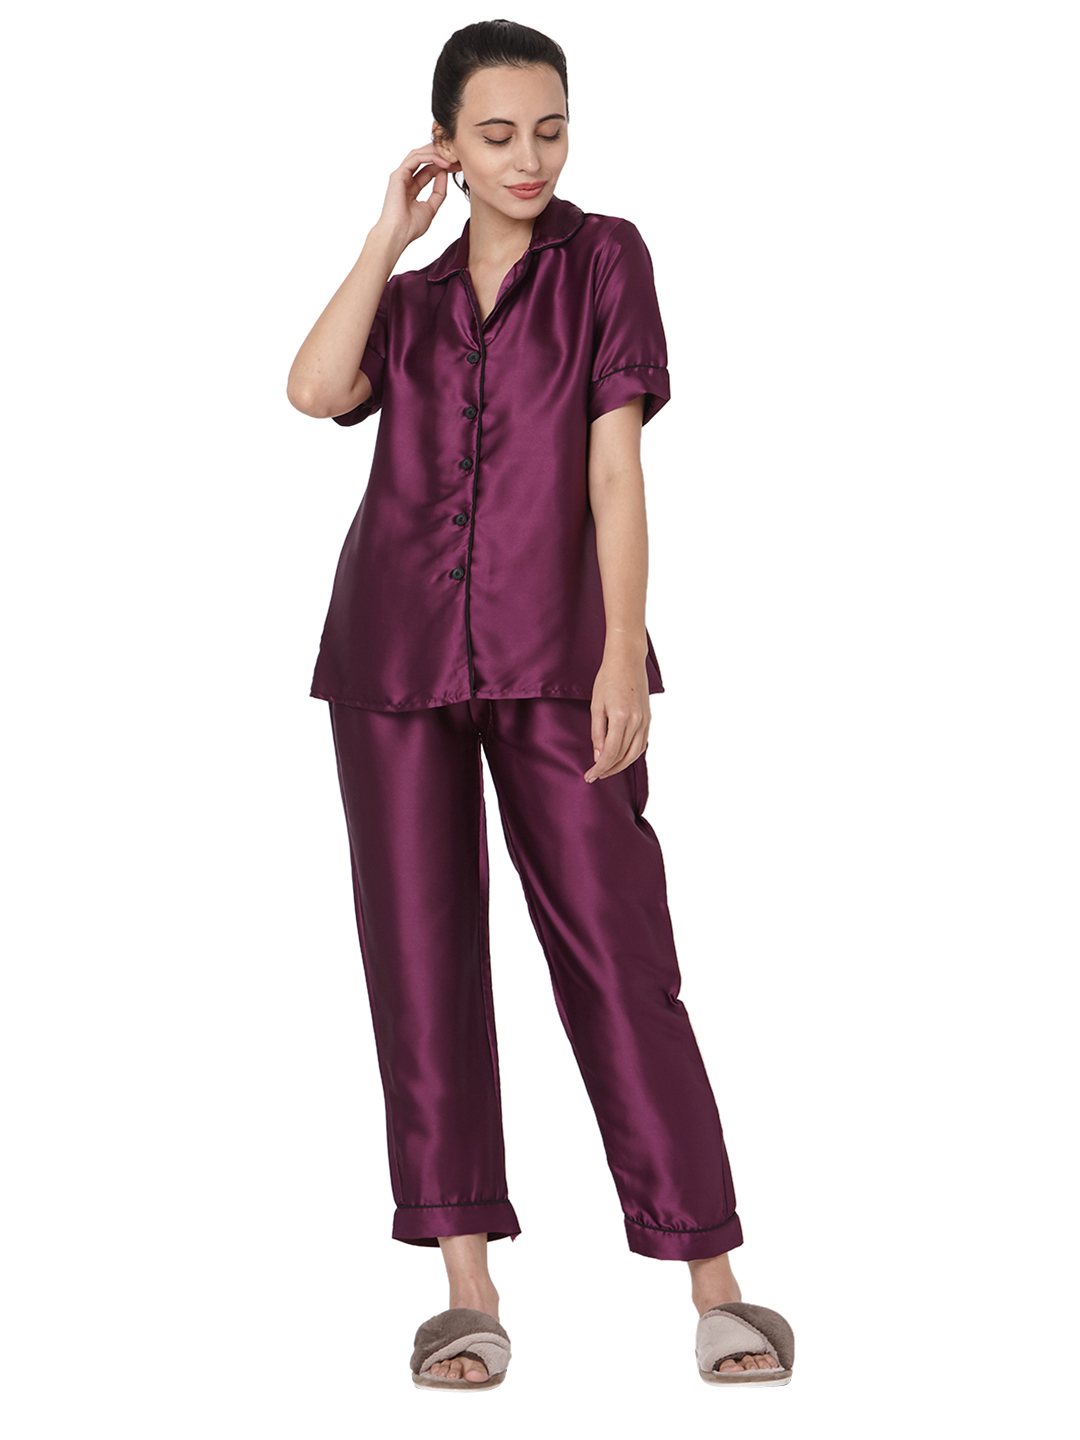 Smarty Pants   Silk satin solid burgundy color night suit pair